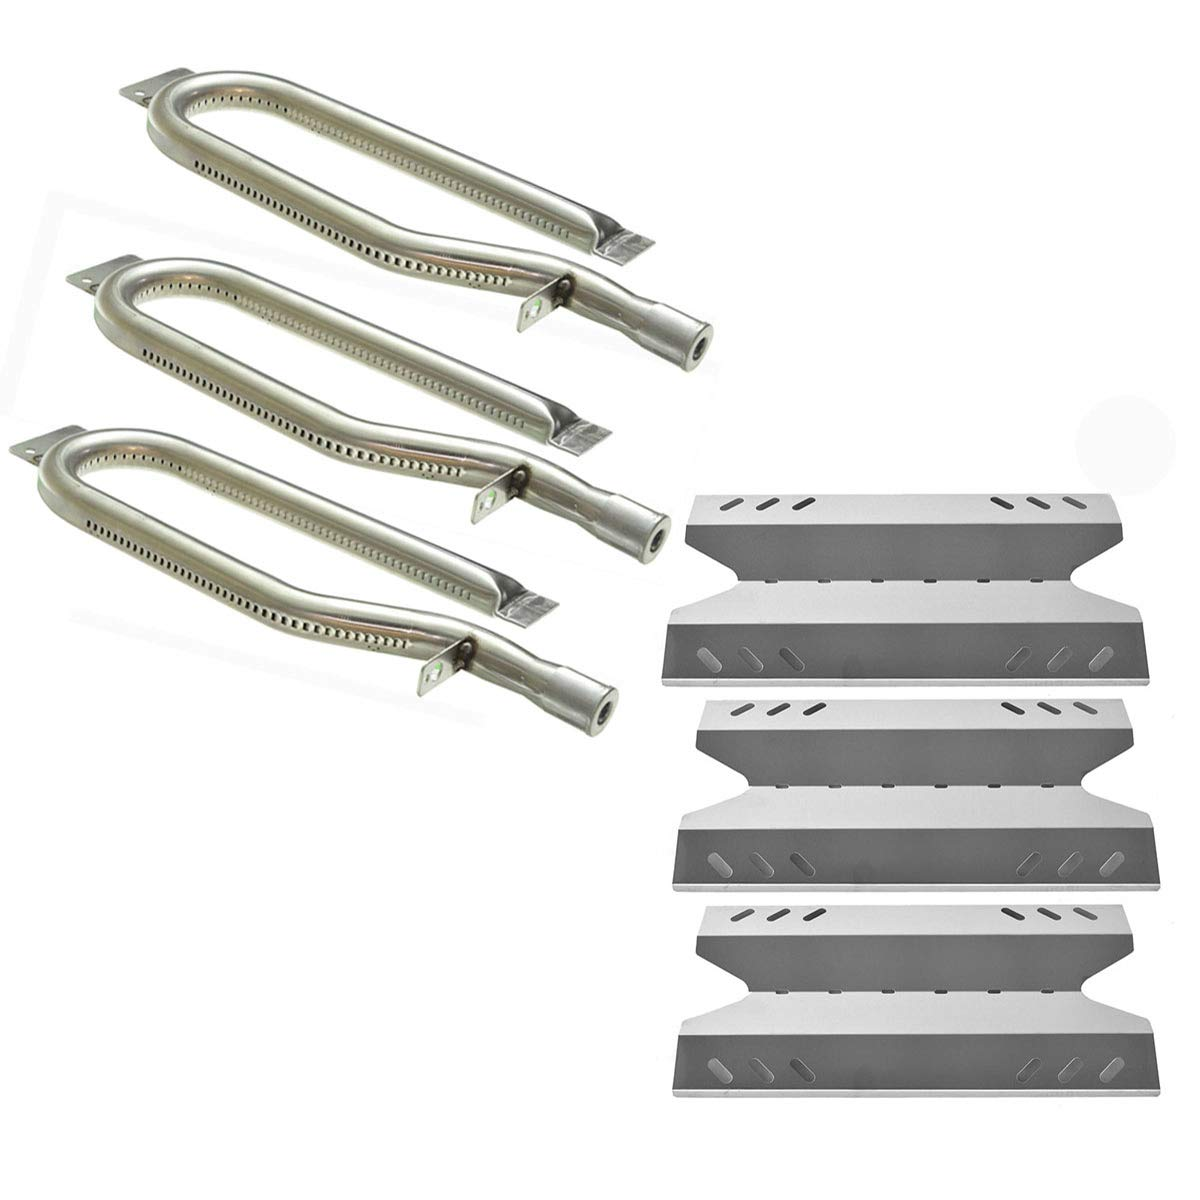 Hisencn Grill Repair Kit Replacement for Members Mark BQ05046-6, BBQ Pro BQ05041-28, BQ51009, Sam's Club, Outdoor Gourmet Gas Grill Models, Stainless Steel Pipe Burner Tube, Heat Plate Tent Shield by Hisencn